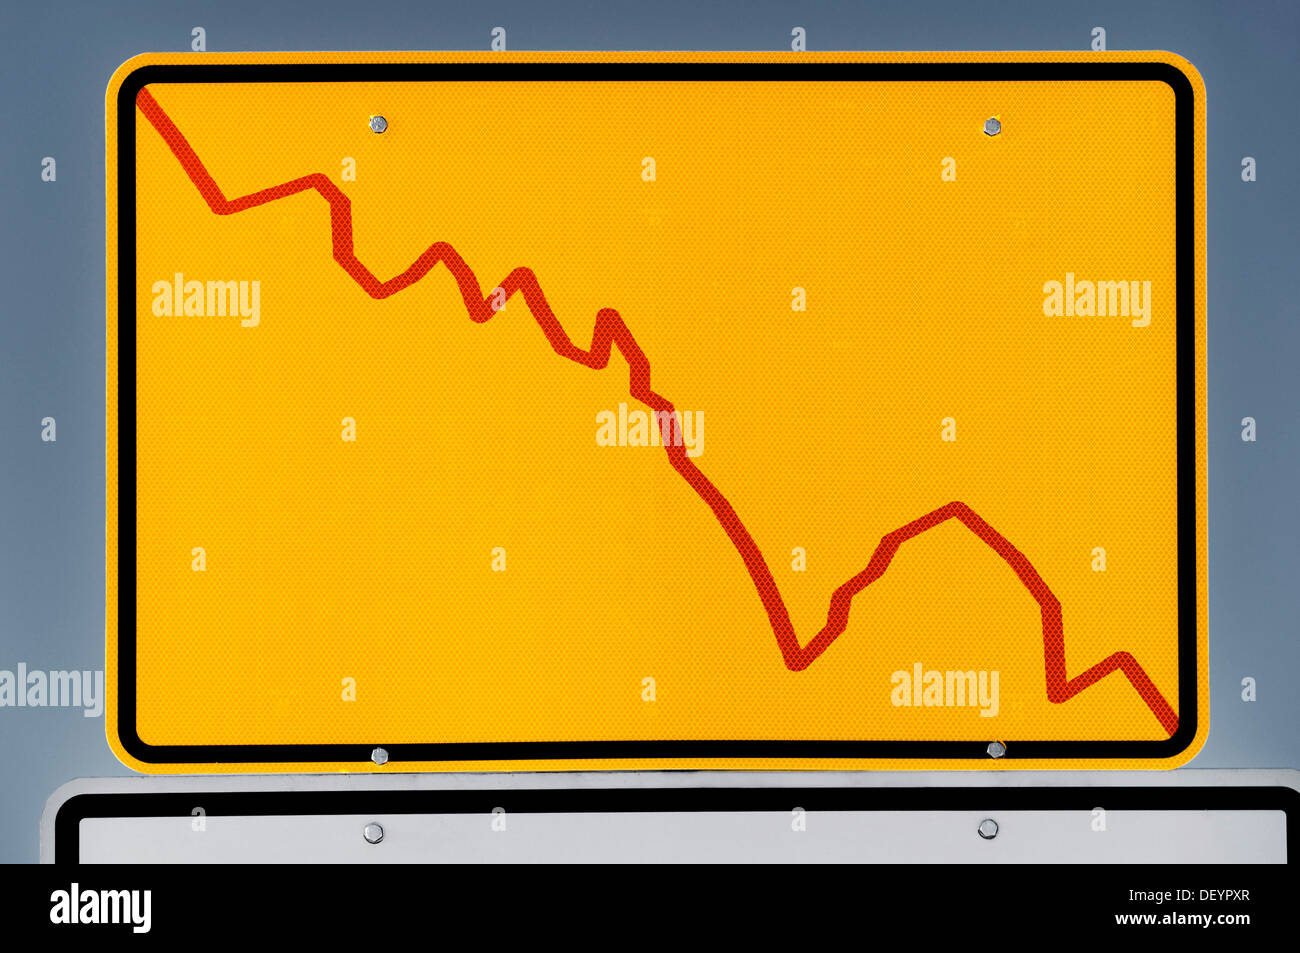 Place-name sign with declining stock chart, symbolic image - Stock Image